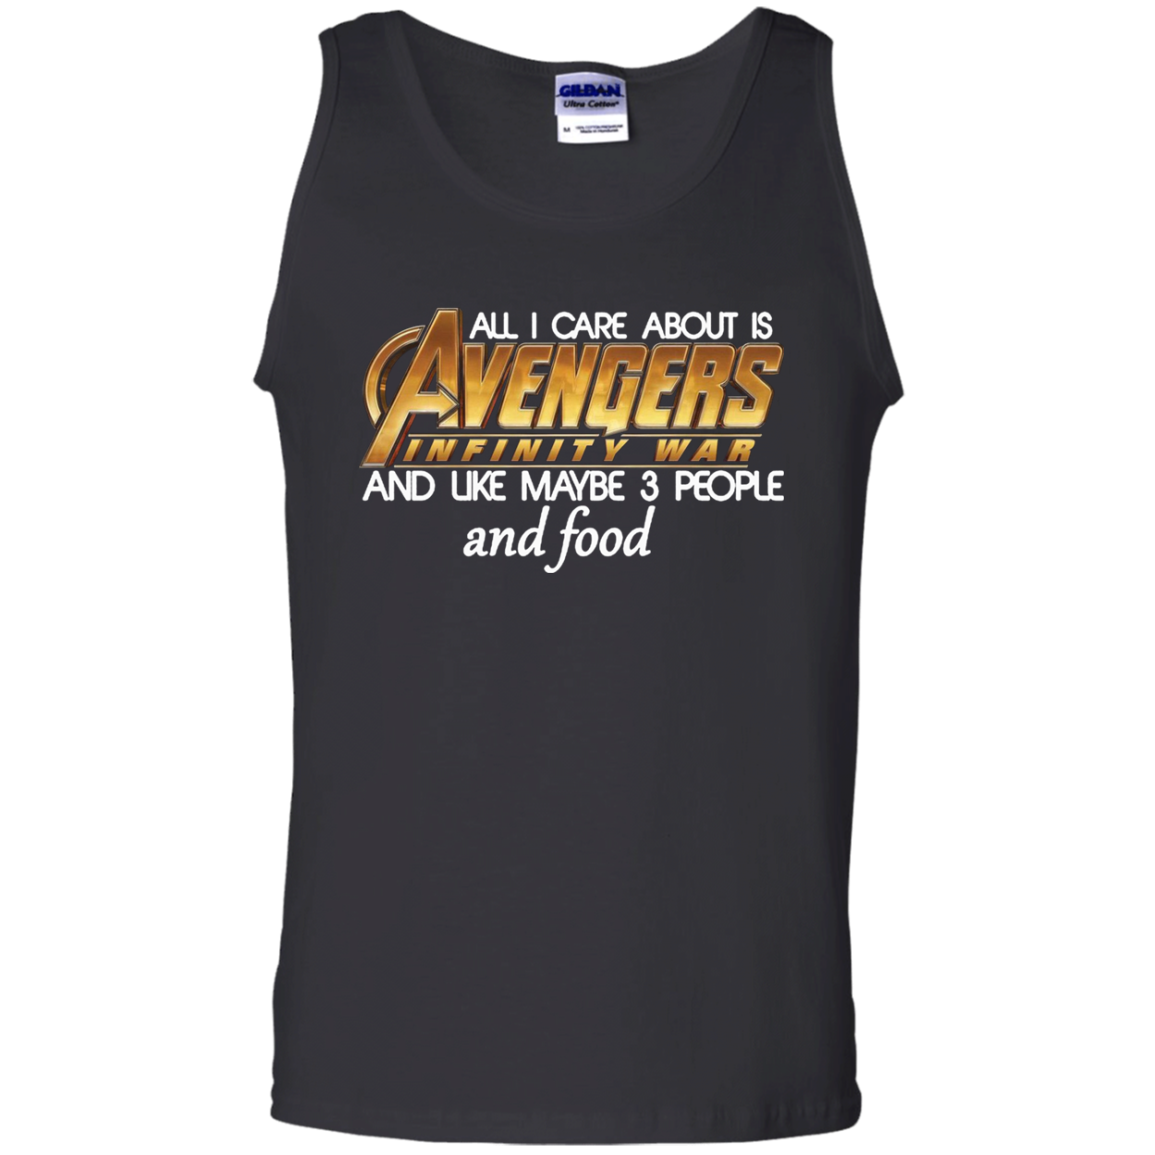 All I Care About Is Avengers Infinity War And Like Maybe 3 People Shirt Cotton Tank Top Men